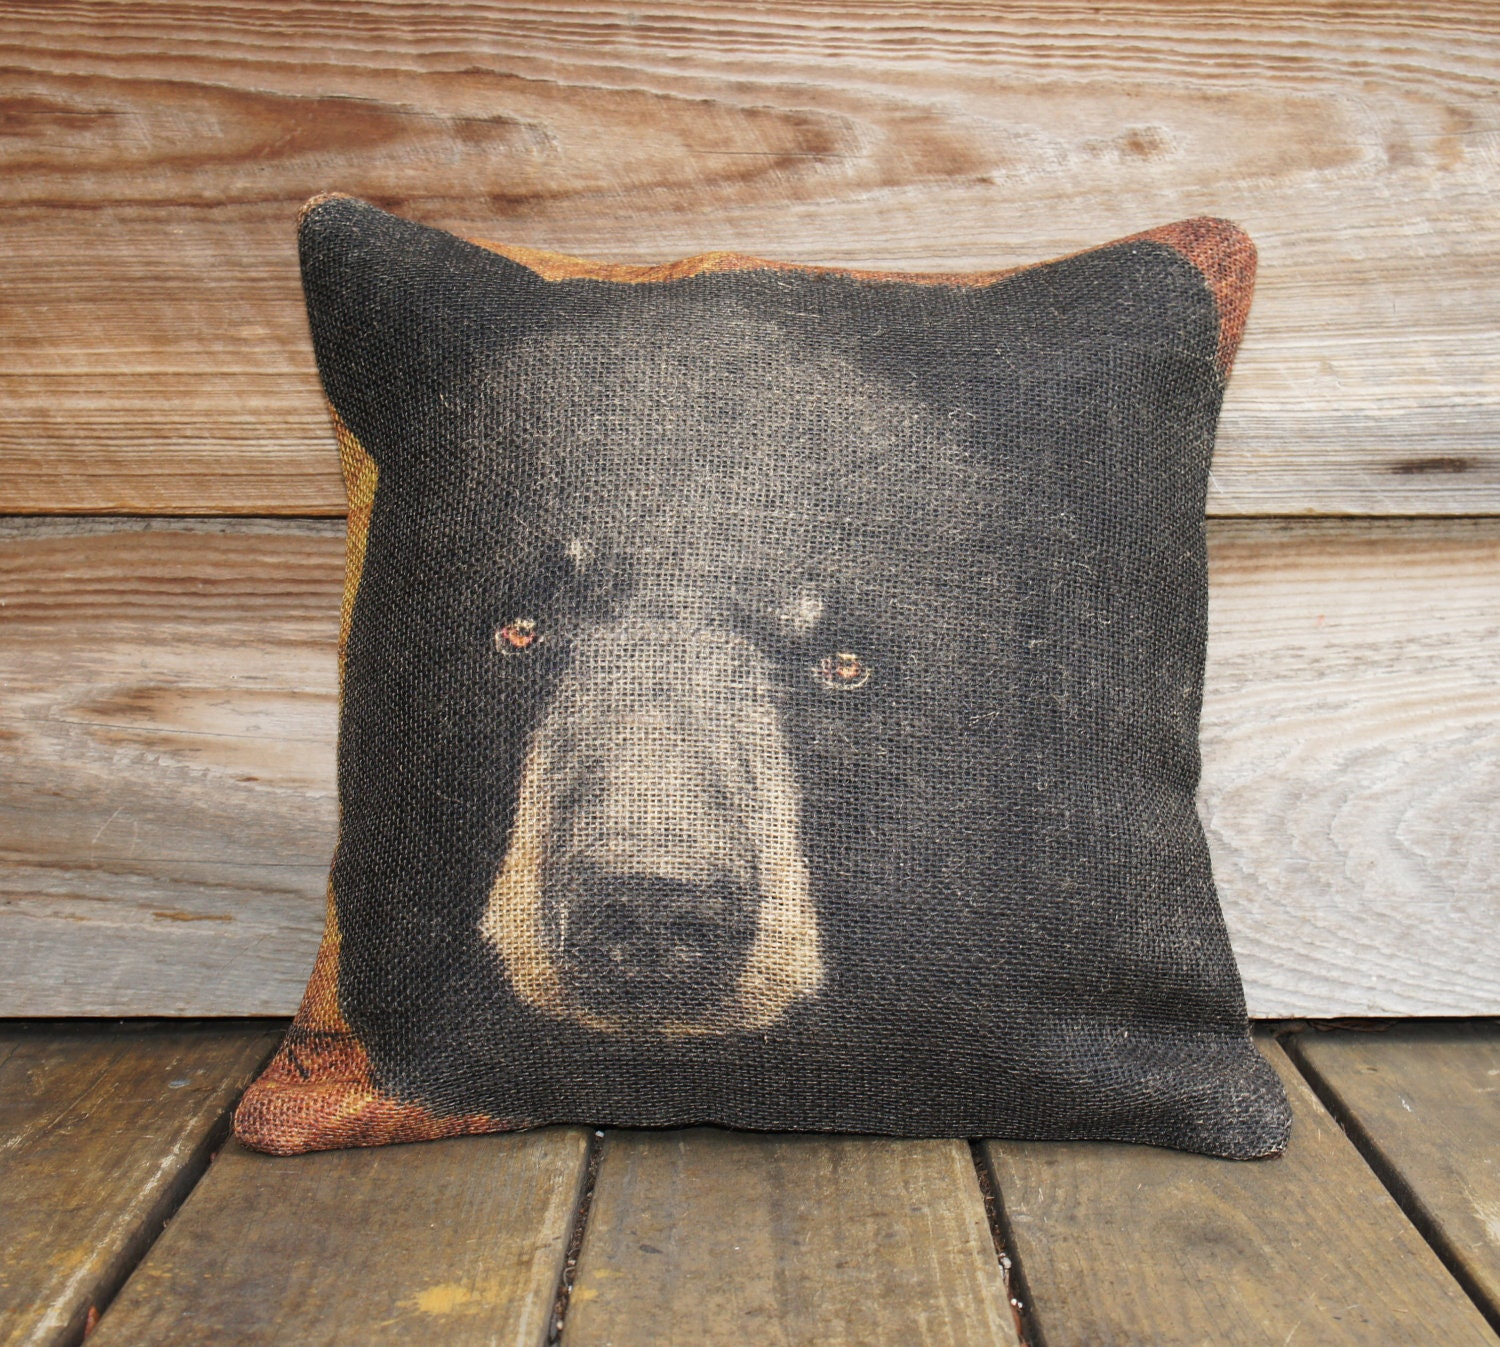 Burlap Pillow of Black Bear, Throw Pillow, Cushion, Rustic ...